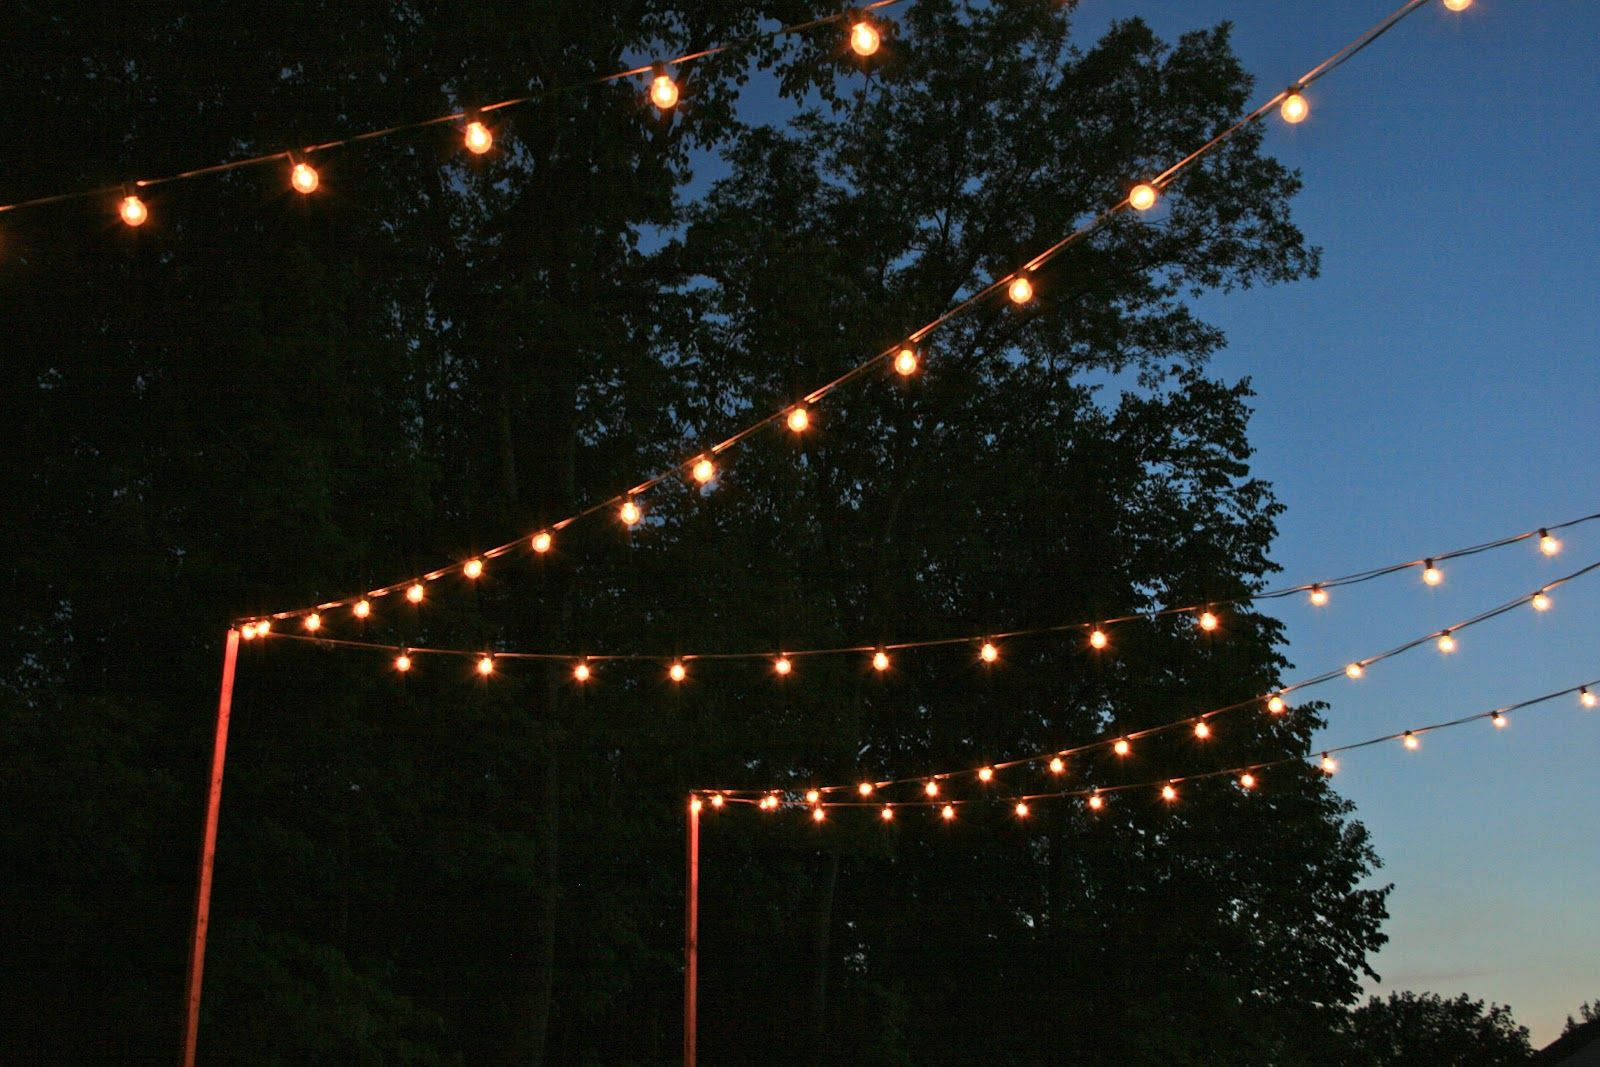 Indiewax outdoor lighting light project and cafes astonishing perfect and delightful cafe lighting ideas with simple outdoor lighting string idea aloadofball Gallery